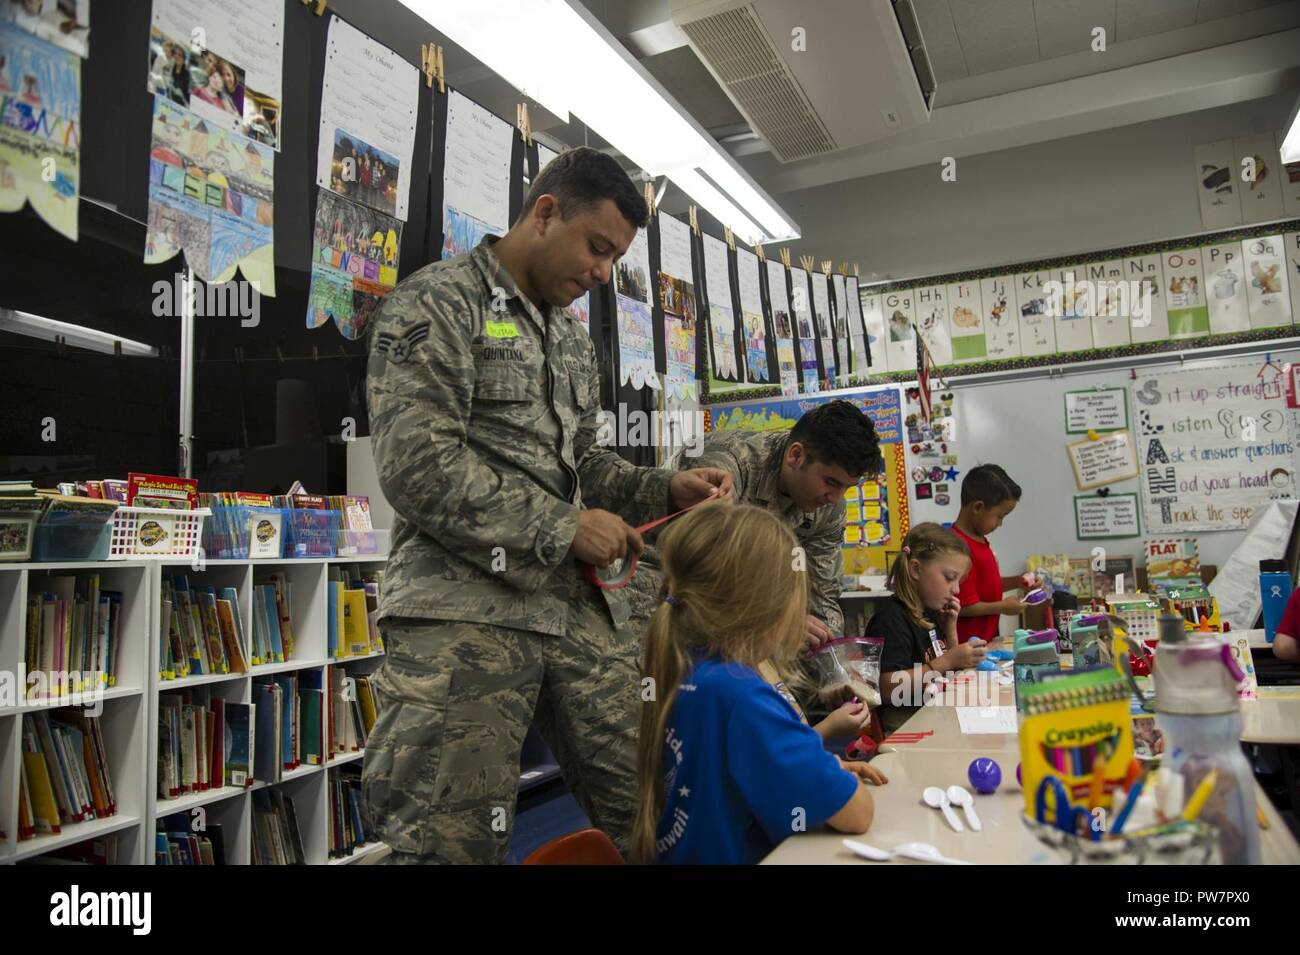 Senior Airman Francisco Quintana and Senior Airman Eddy Santibanez, 647th Logistics Readiness Squadron combat mobility team members, help second grade students make maracas at Hickam Elementary School, Joint Base Pearl Harbor-Hickam, Hawaii, Sept. 27, 2017.  Volunteers organized a variety of events for the students in support of Hispanic Heritage Month.  Hispanic Heritage Month is observed from 15 Sept.-15 Oct. to celebrate the history, culture and contributions of American citizens whose ancestors came from Spain, Mexico, the Caribbean and Central and South America. - Stock Image